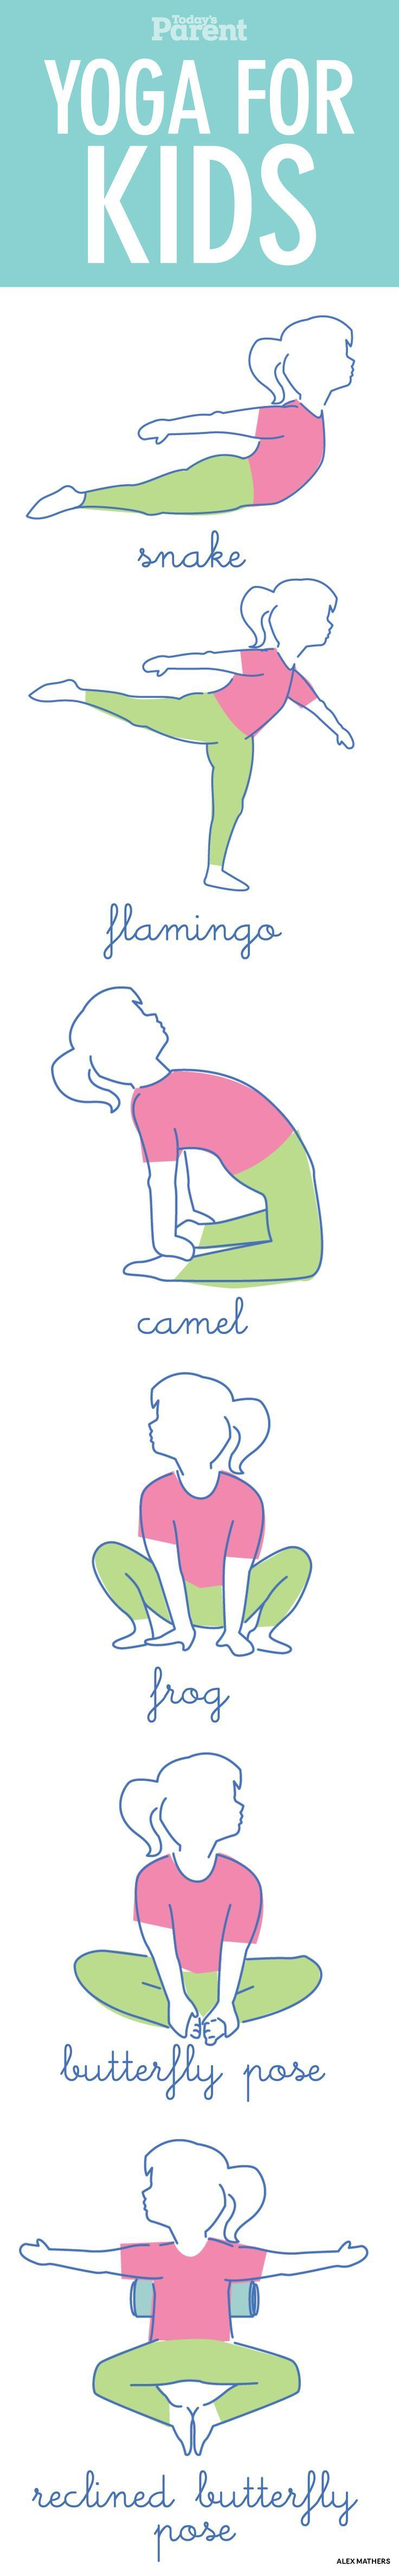 (todaysparent.com) Adults aren't the only ones who are stressed. Find out how yoga for kids can help calm little minds.